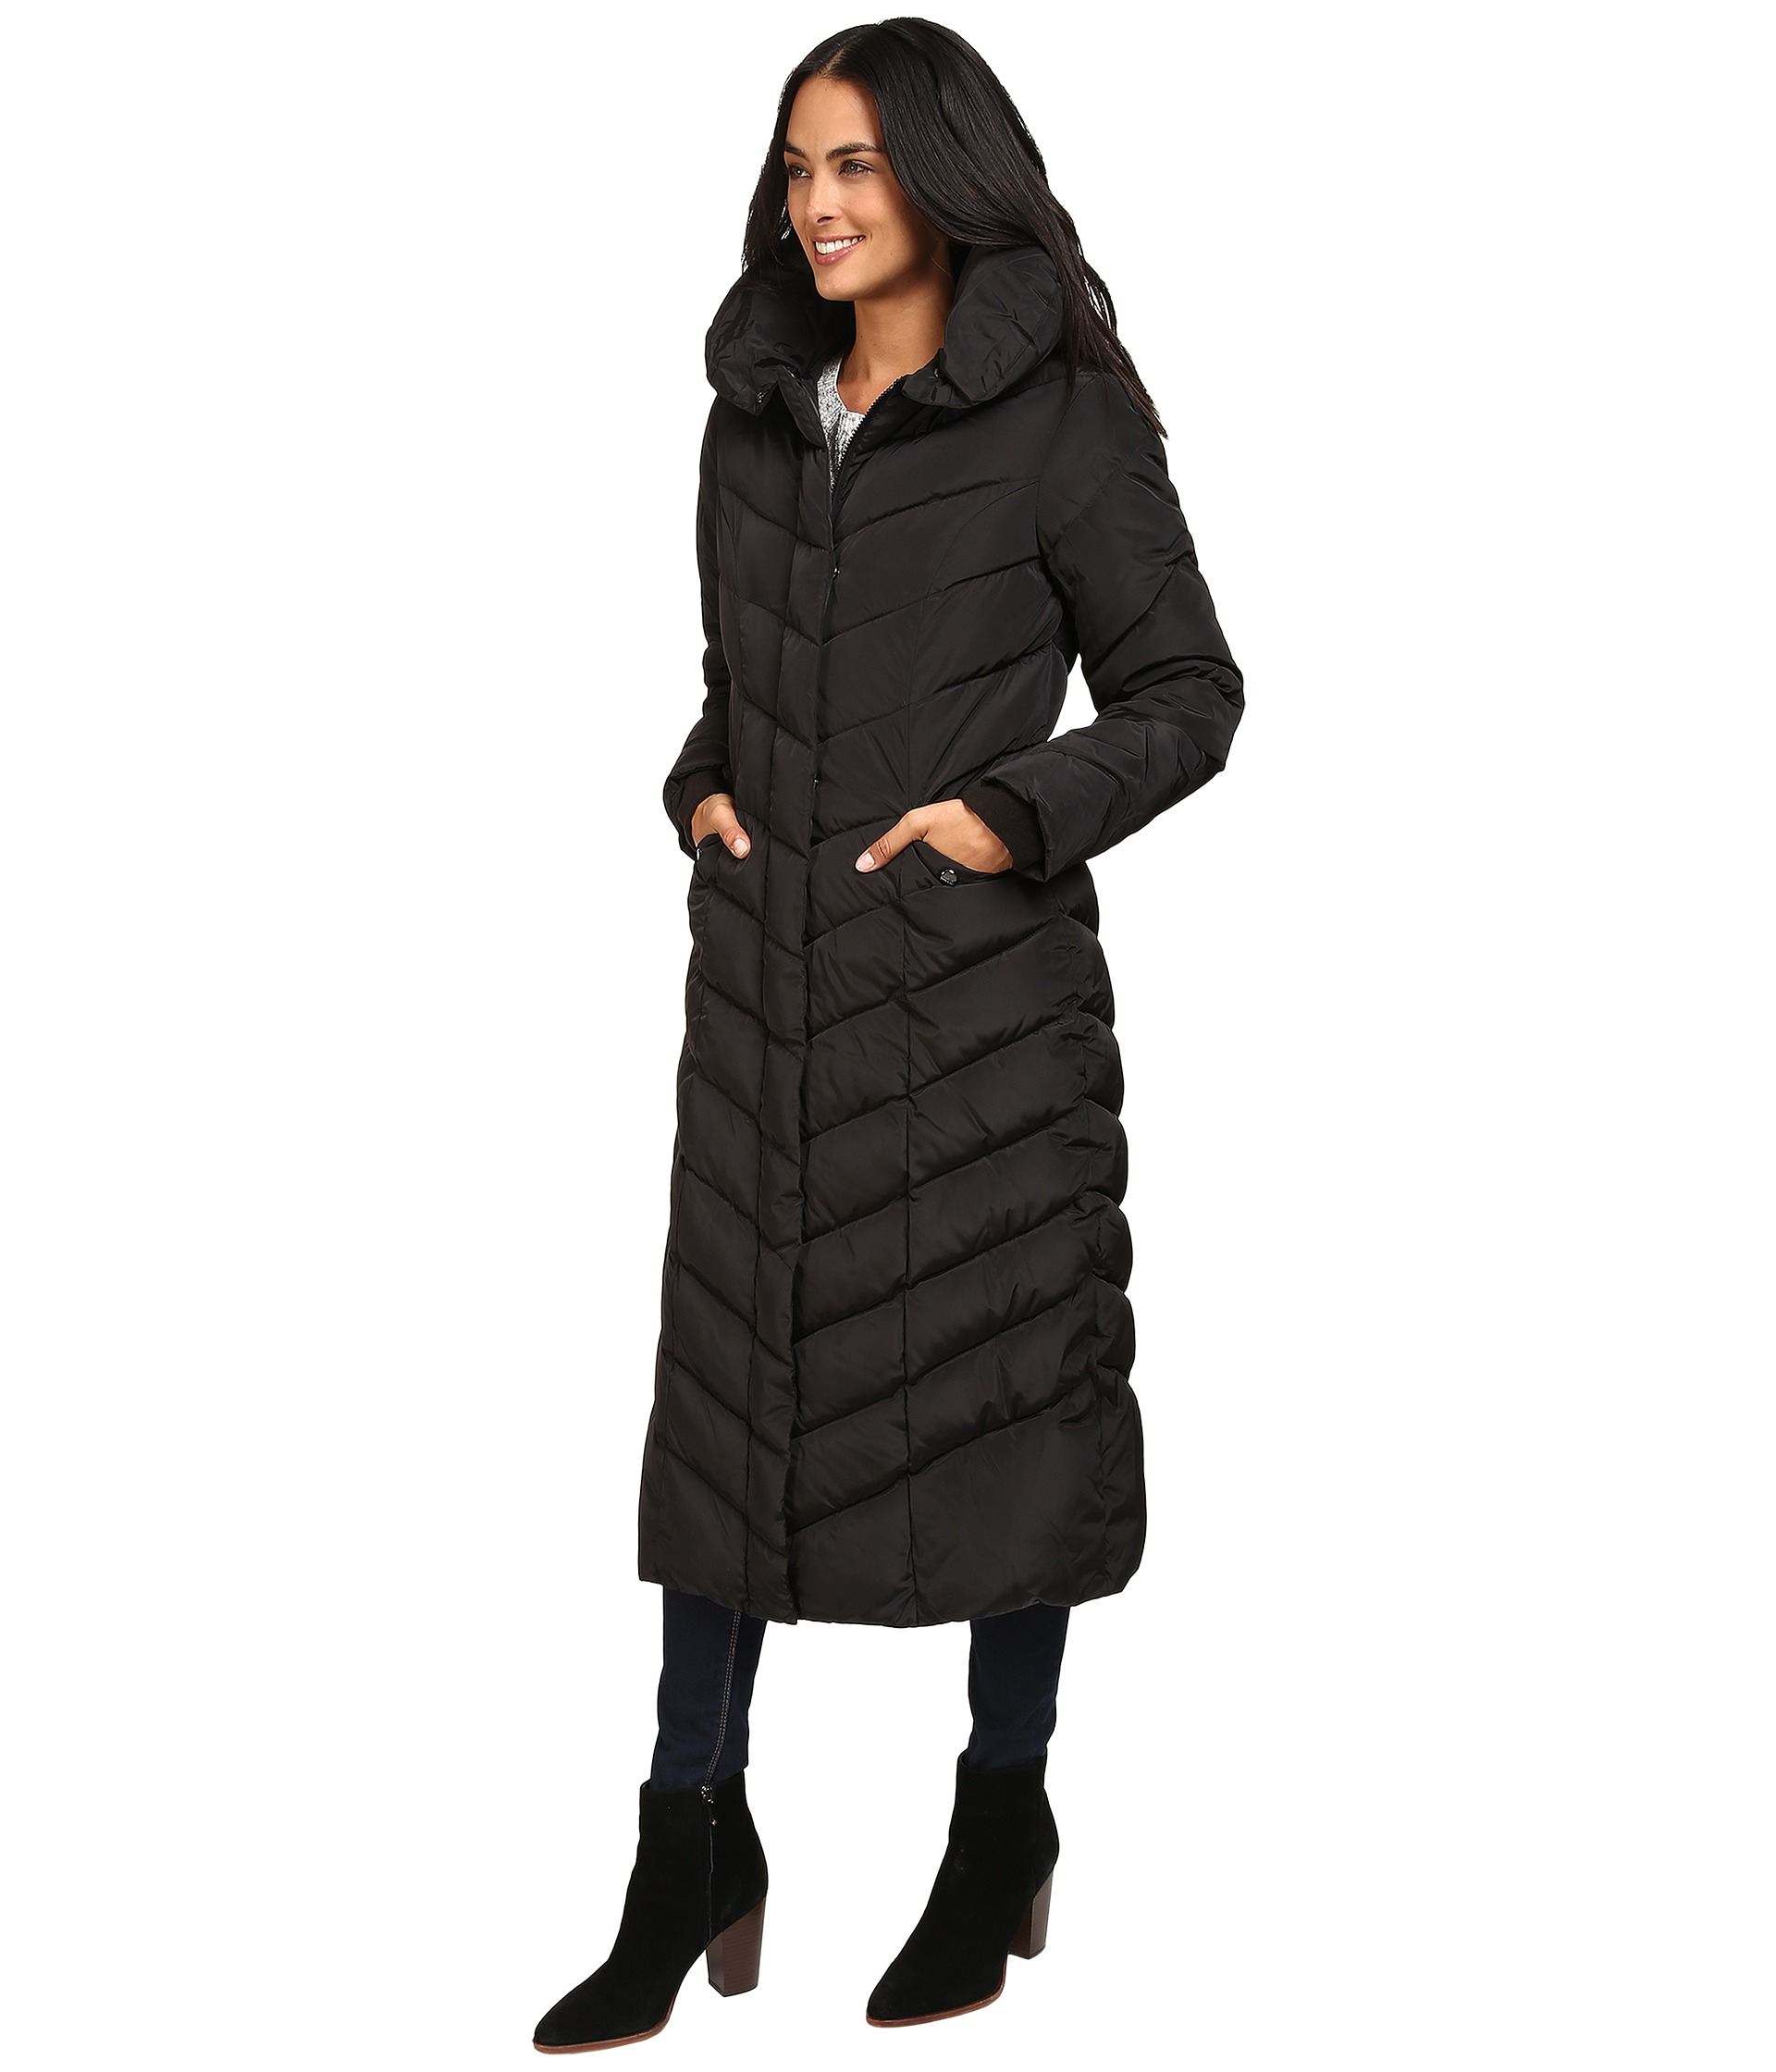 6dafb3463 Steve Madden Women's Maxi Hooded Chevron Puffer Coat - Black - Size ...